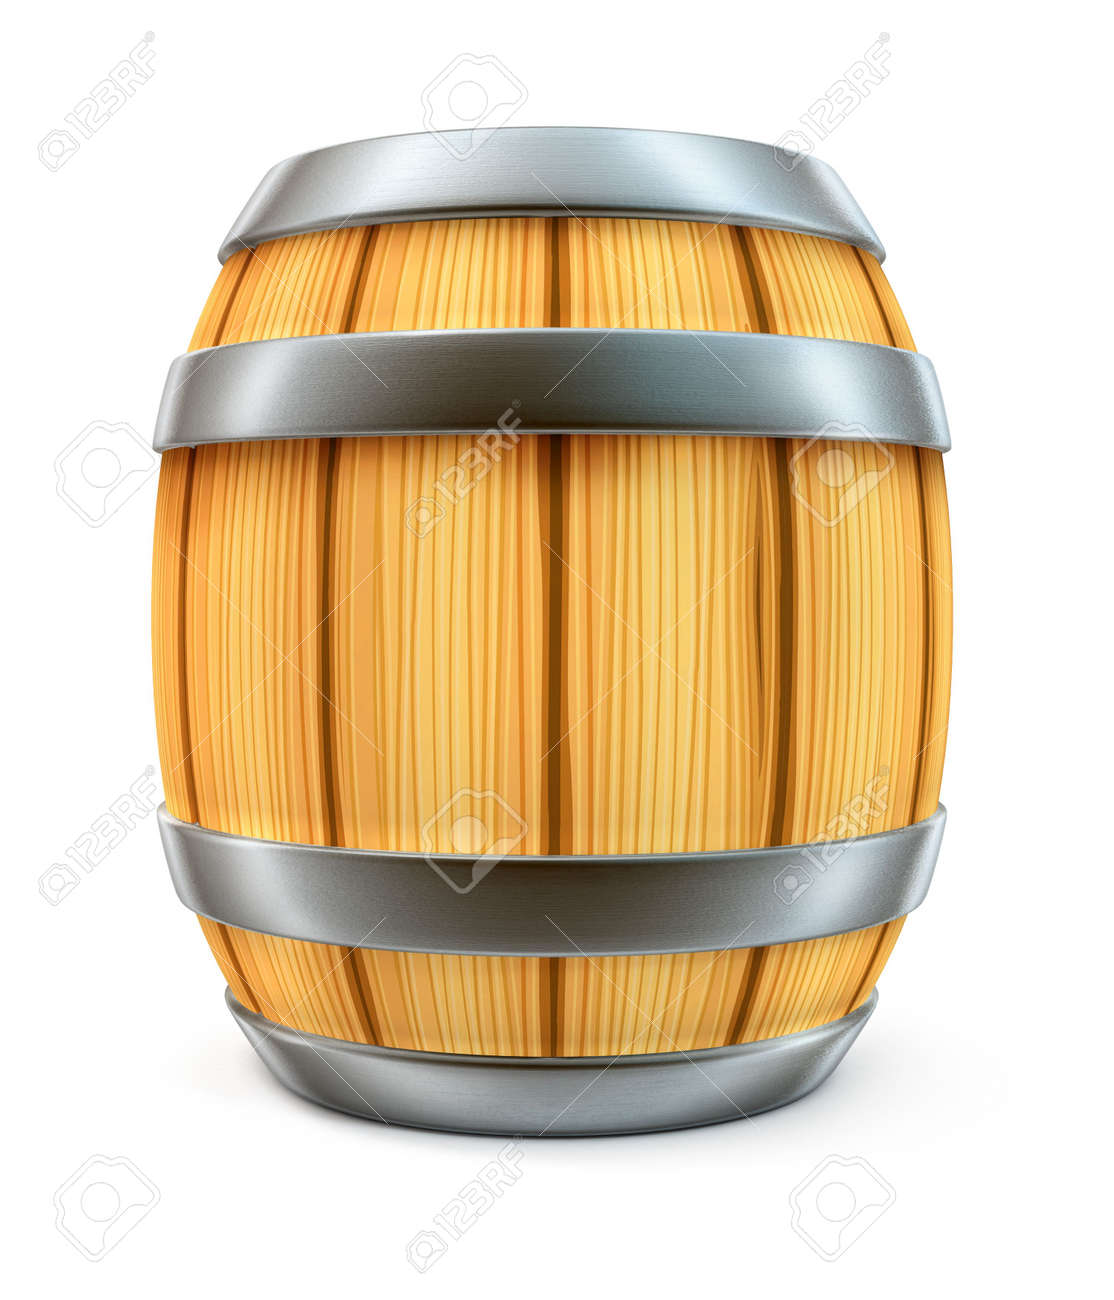 wooden barrel for wine and beer storage isolated on white background Stock Photo - 3642560